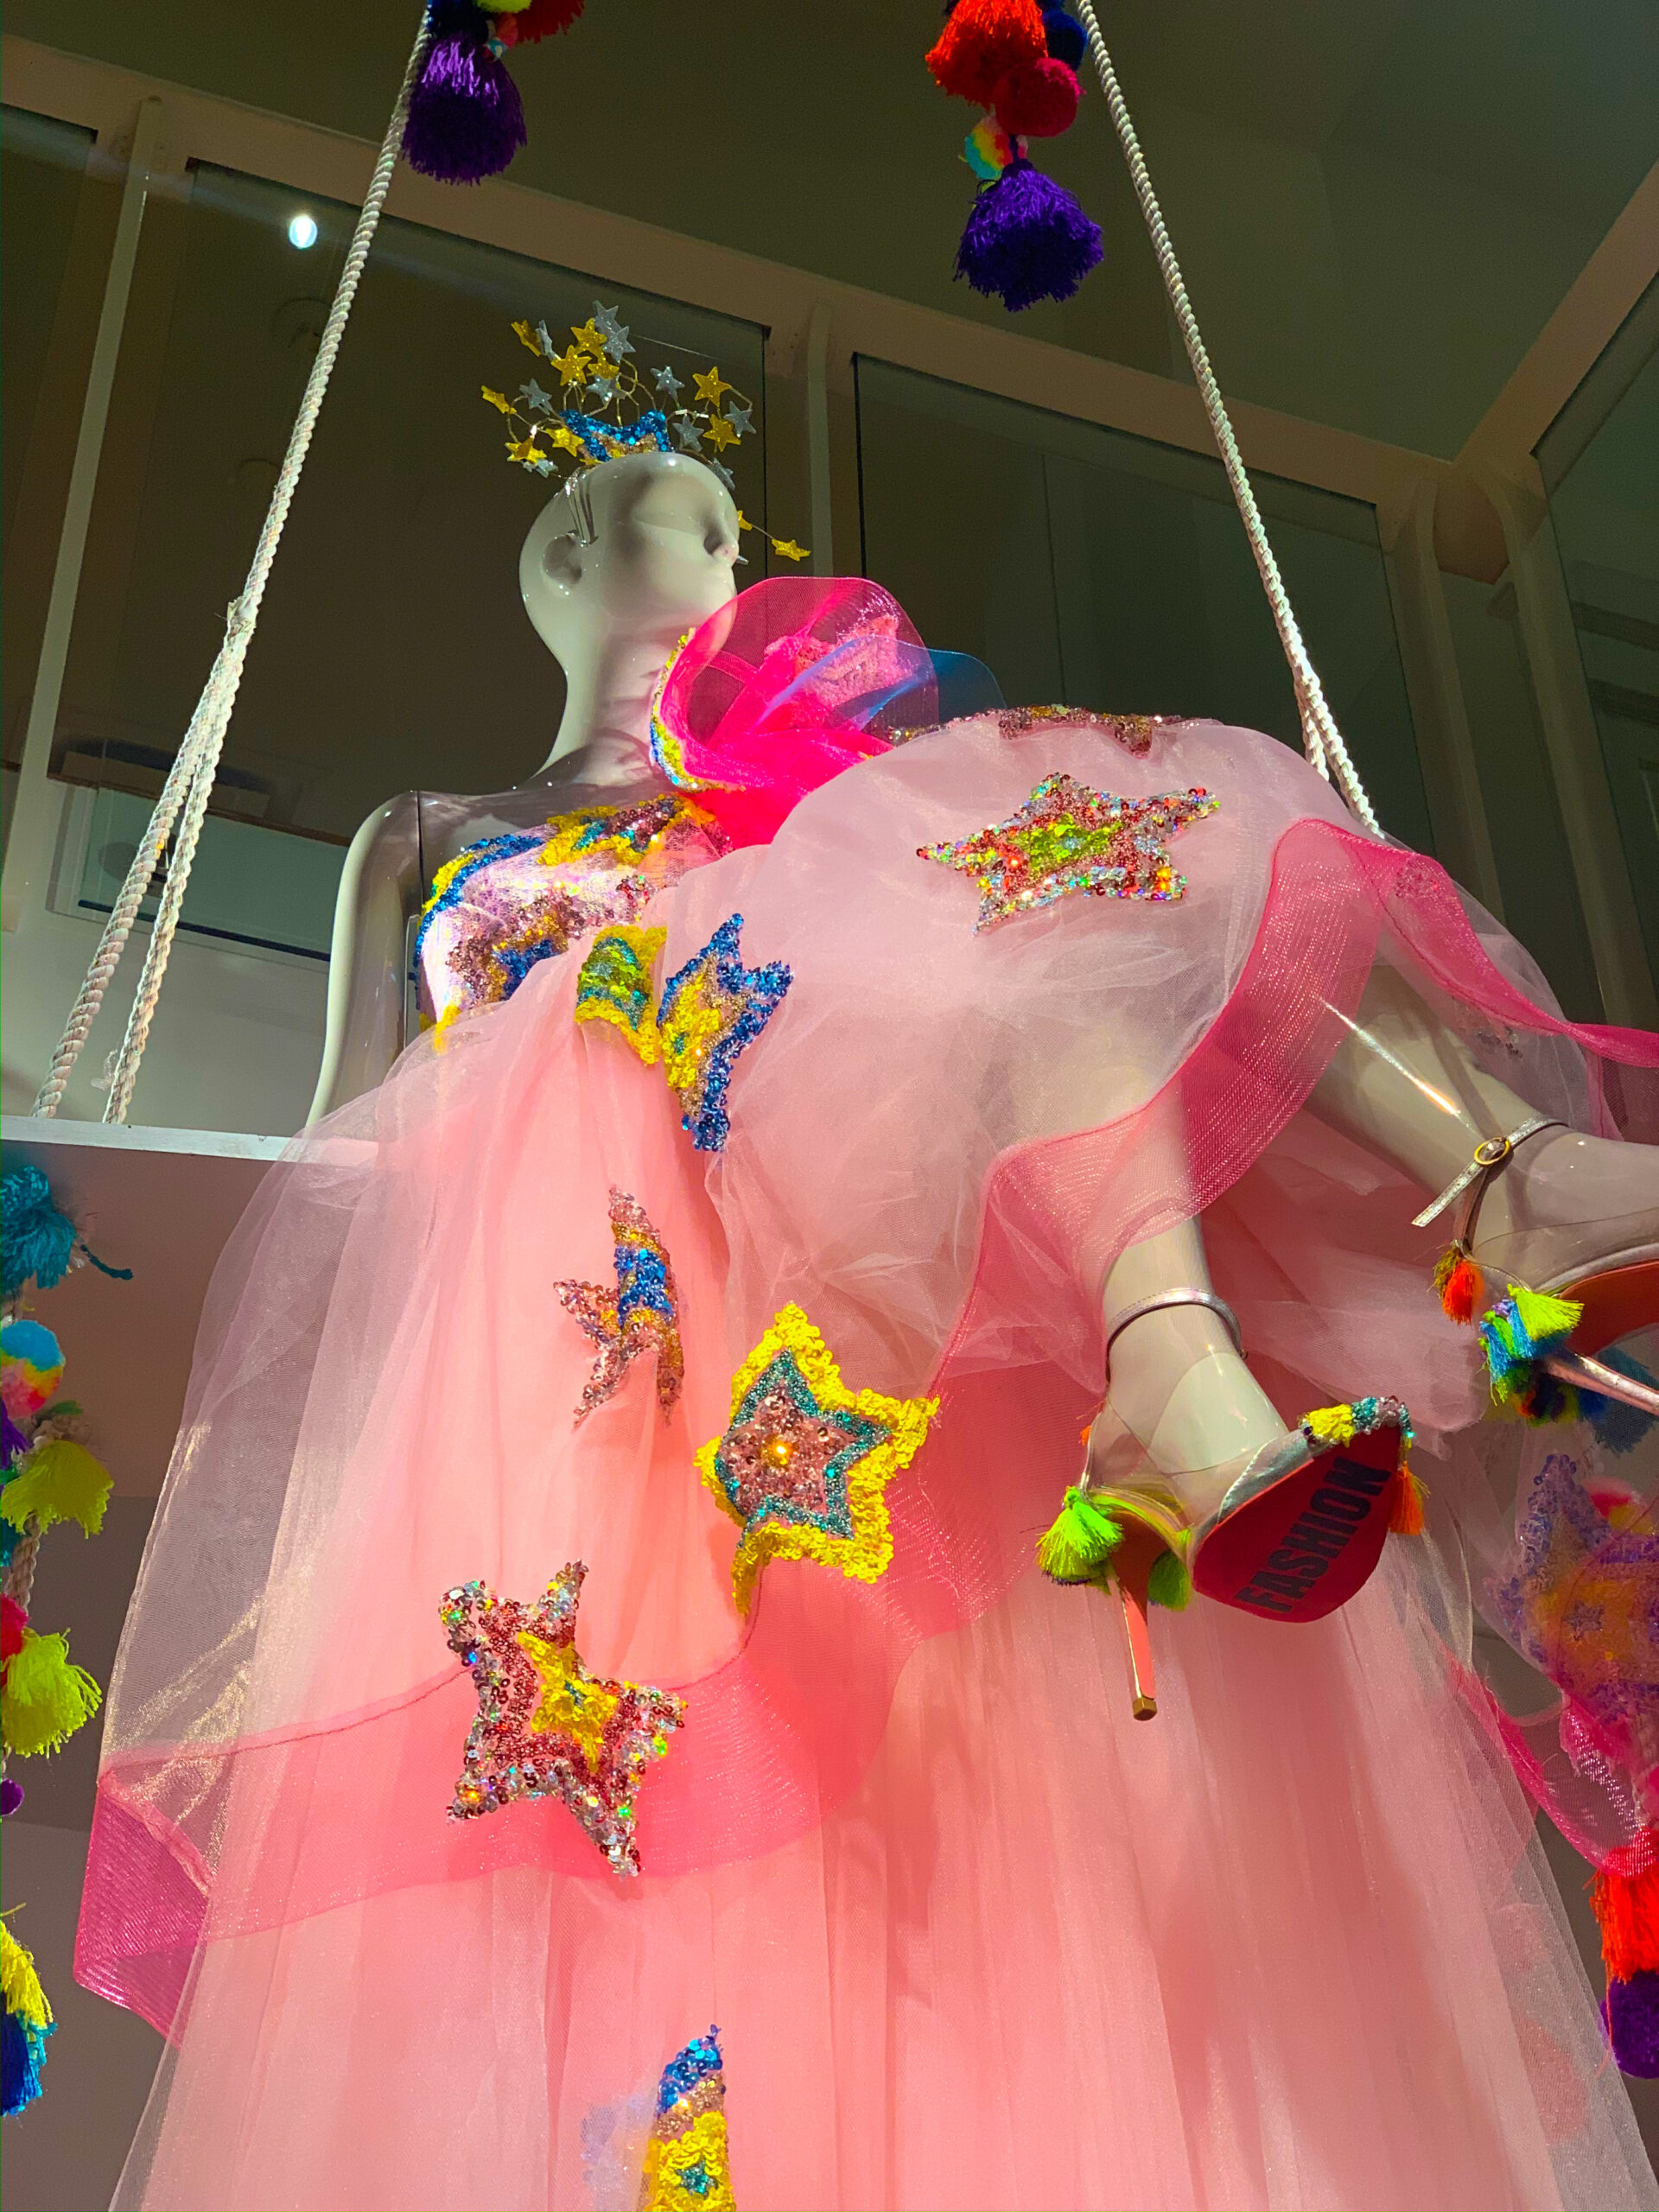 Art Couture at Cornell Art Museum